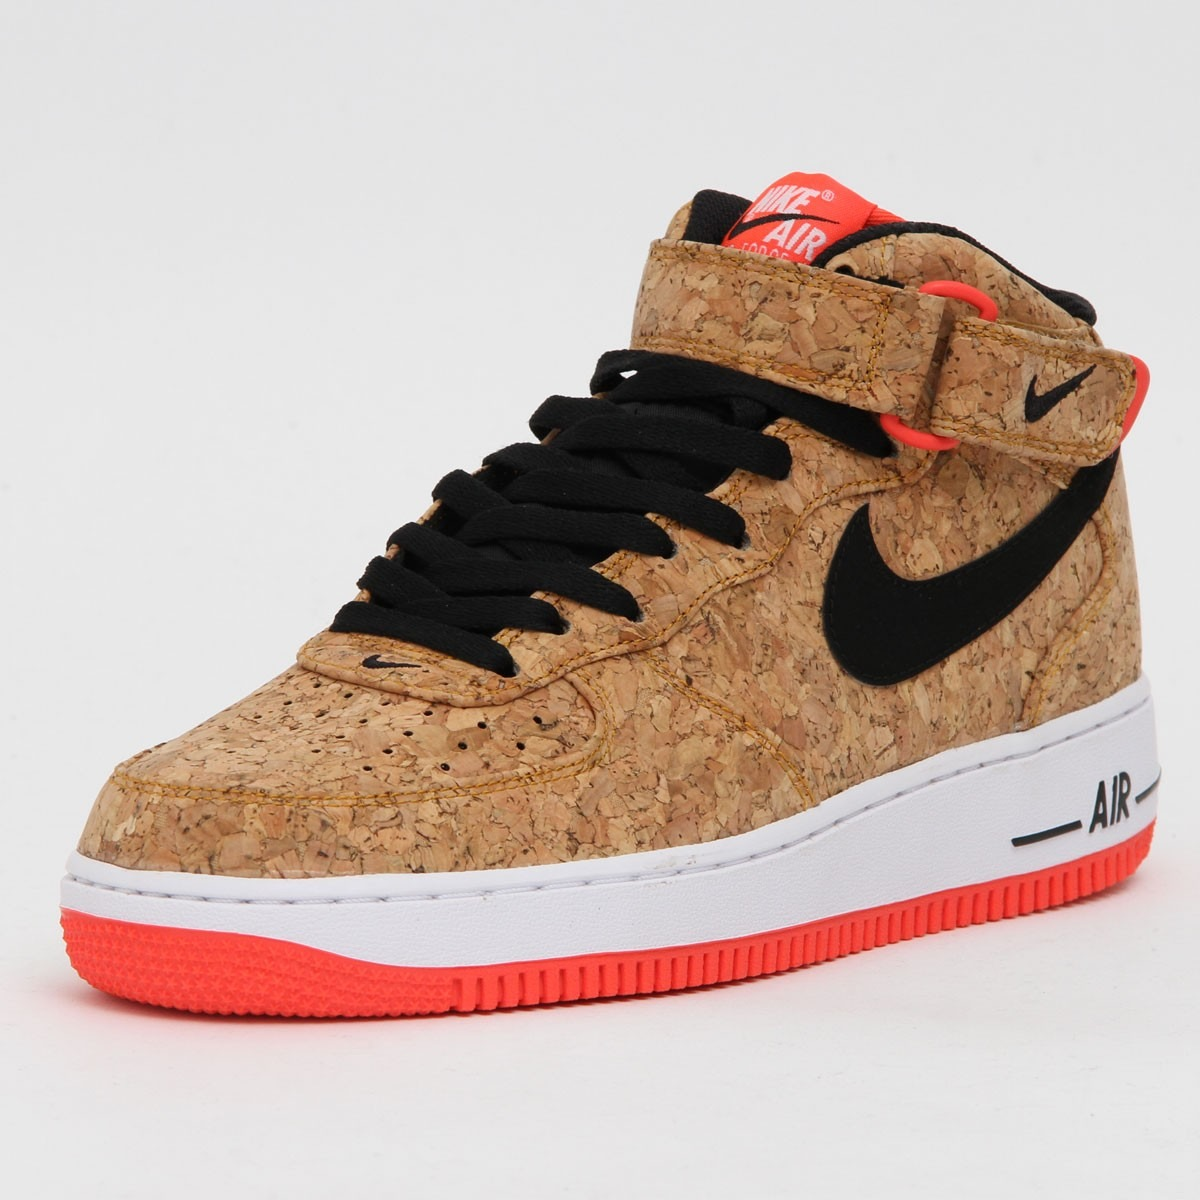 nike air force 1 mid cork. Black Bedroom Furniture Sets. Home Design Ideas